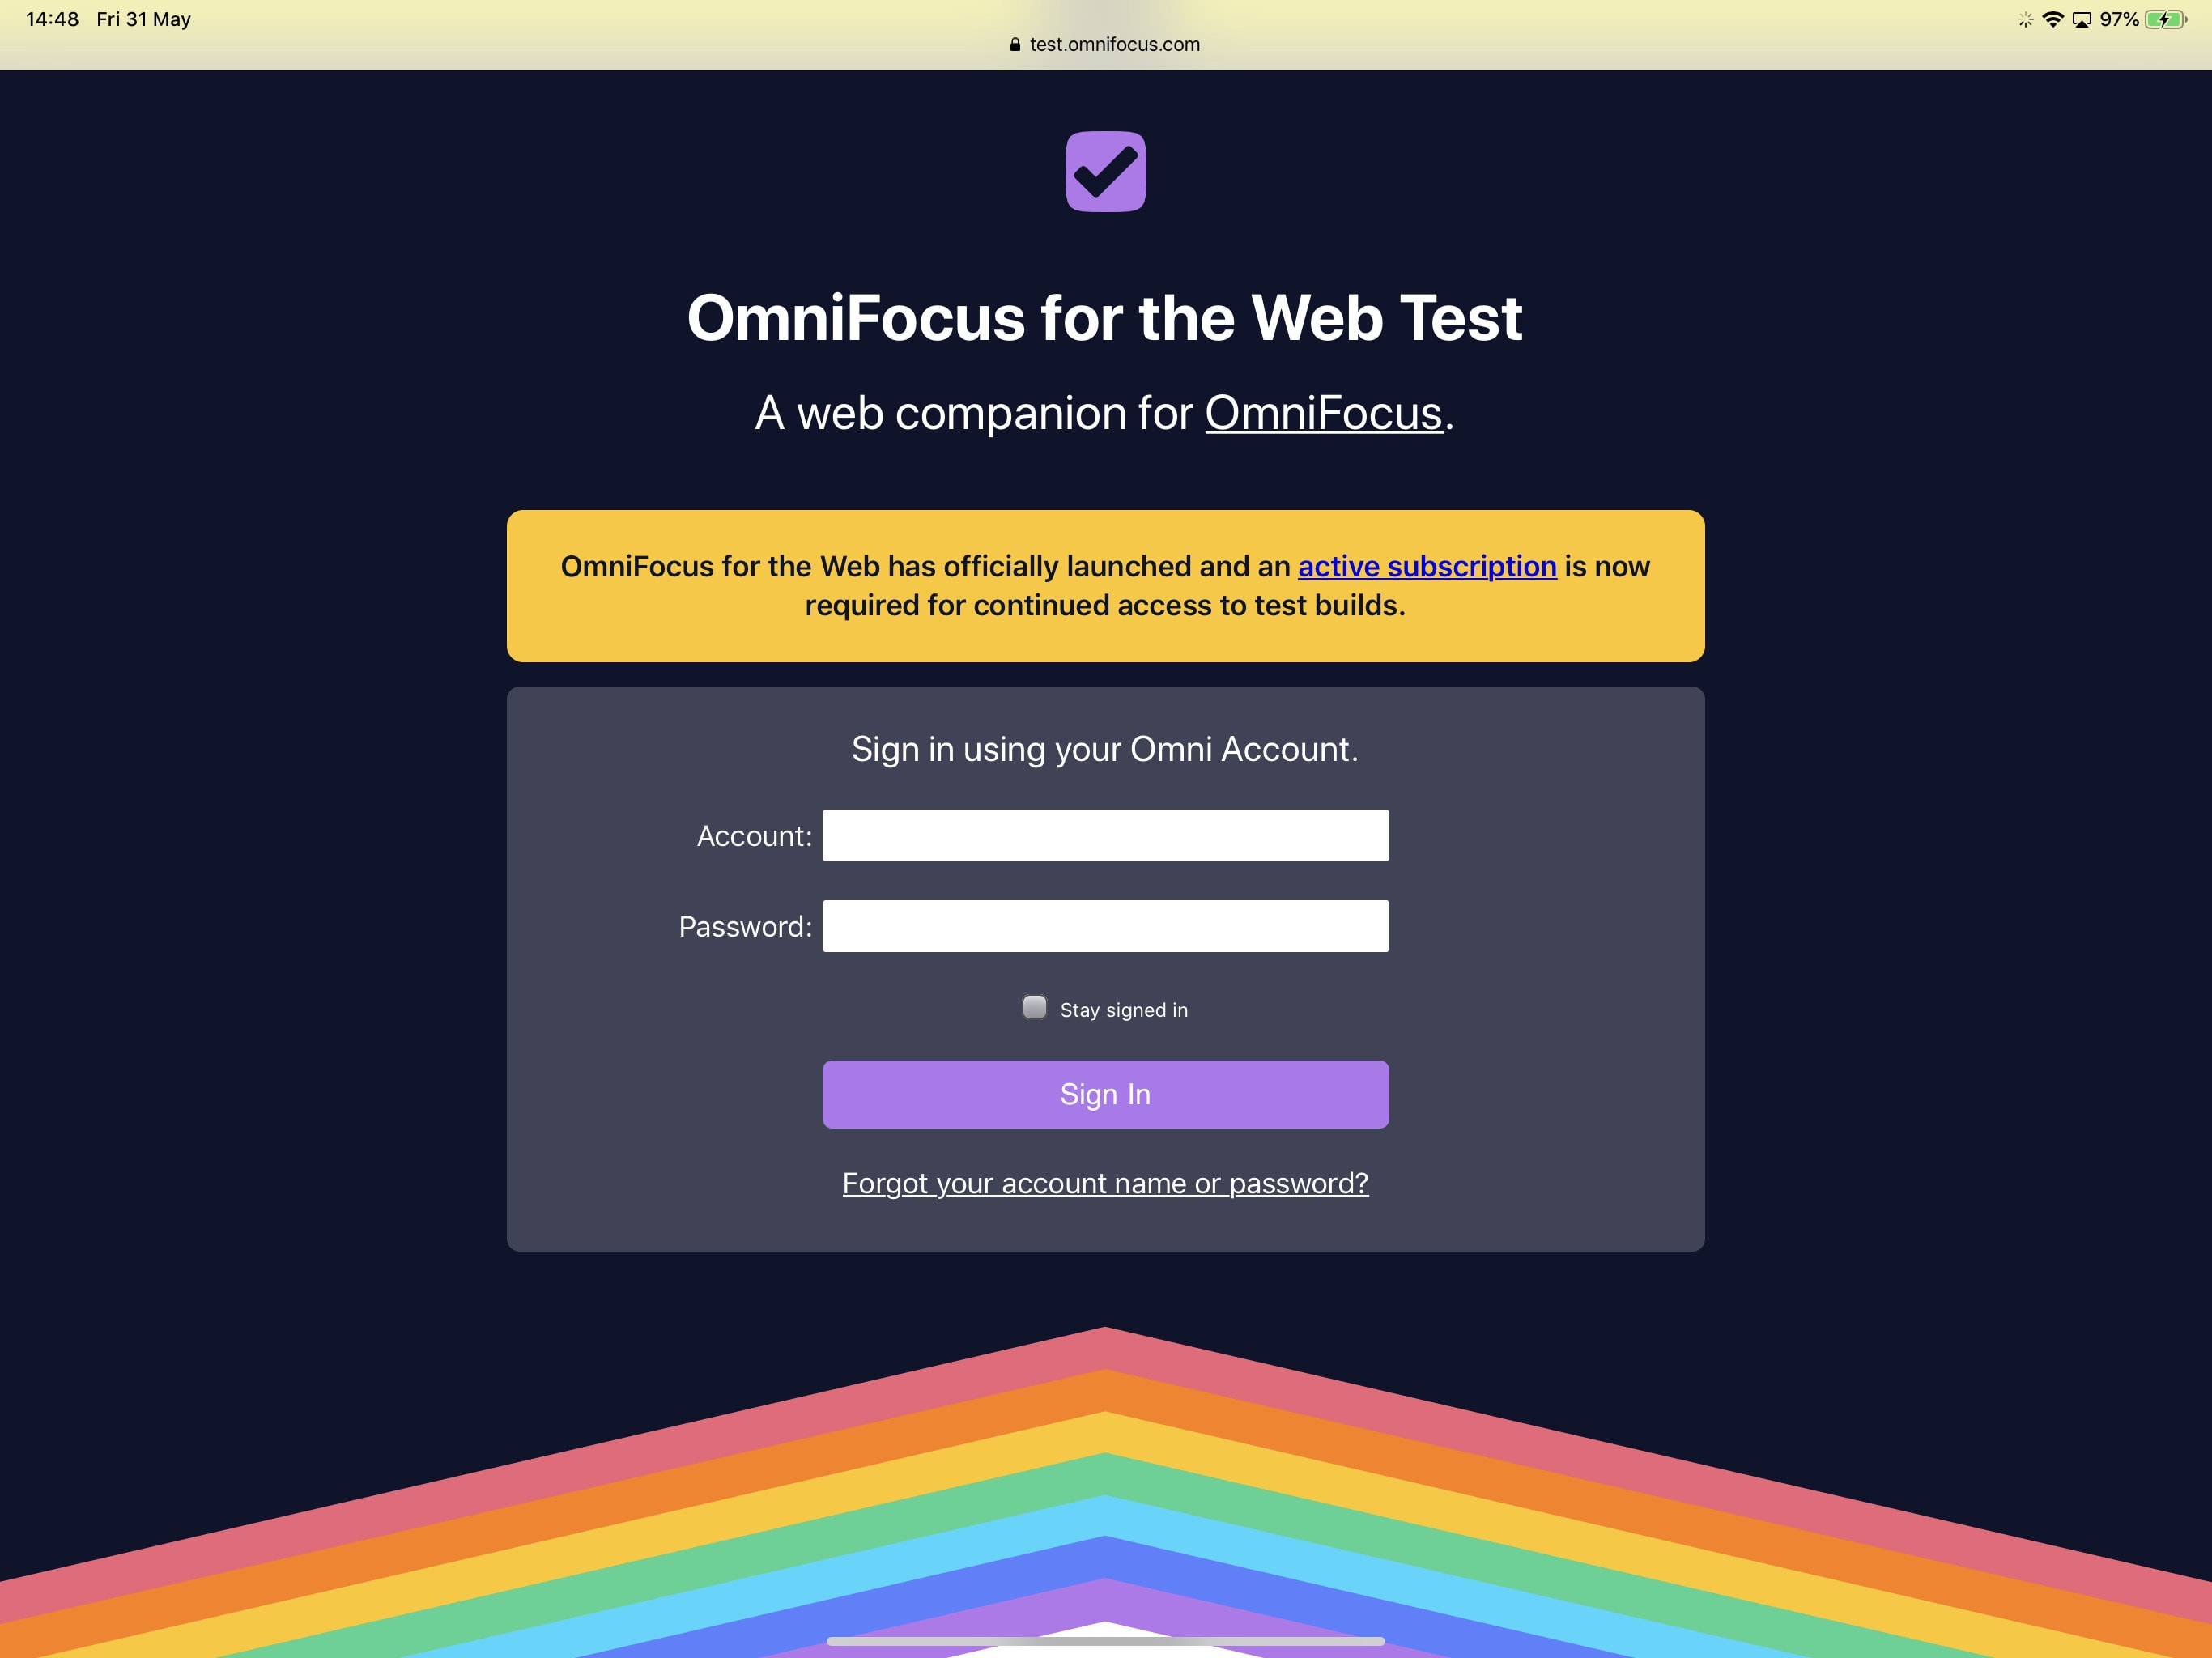 OmniFocus for the Web